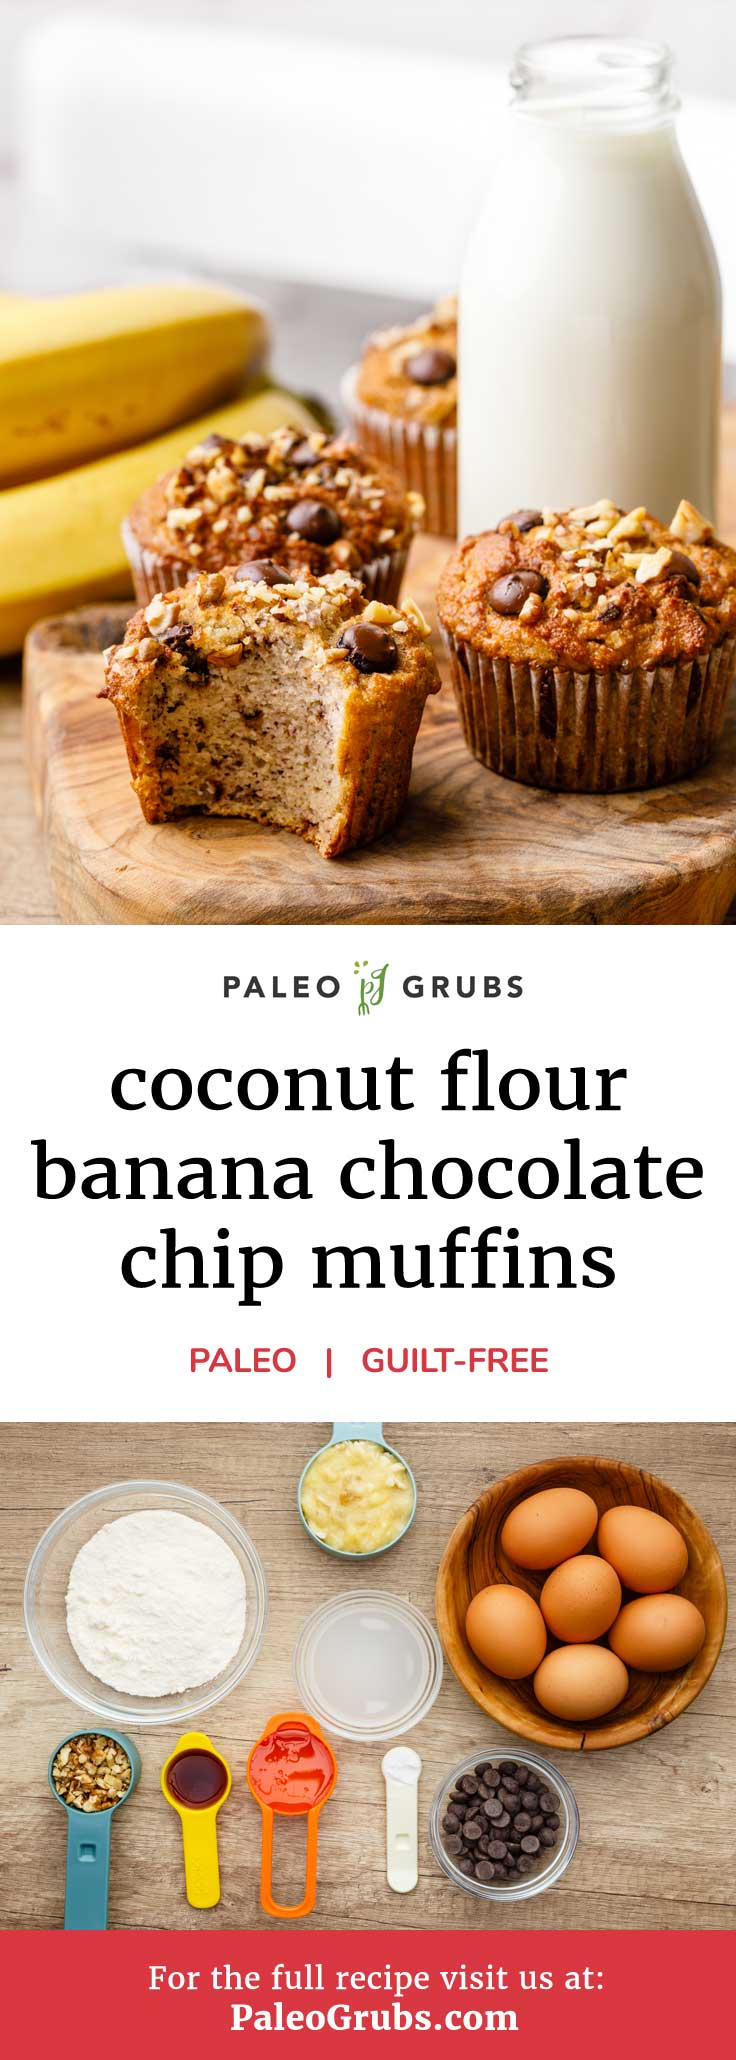 This is easily one of my favorite muffin recipes of all time. It takes the great taste of banana bread and adds in walnuts and dark chocolate chips to make some truly tasty paleo muffins that can be enjoyed as a snack or as a grab and go breakfast option whenever you're feeling rushed in the mornings.